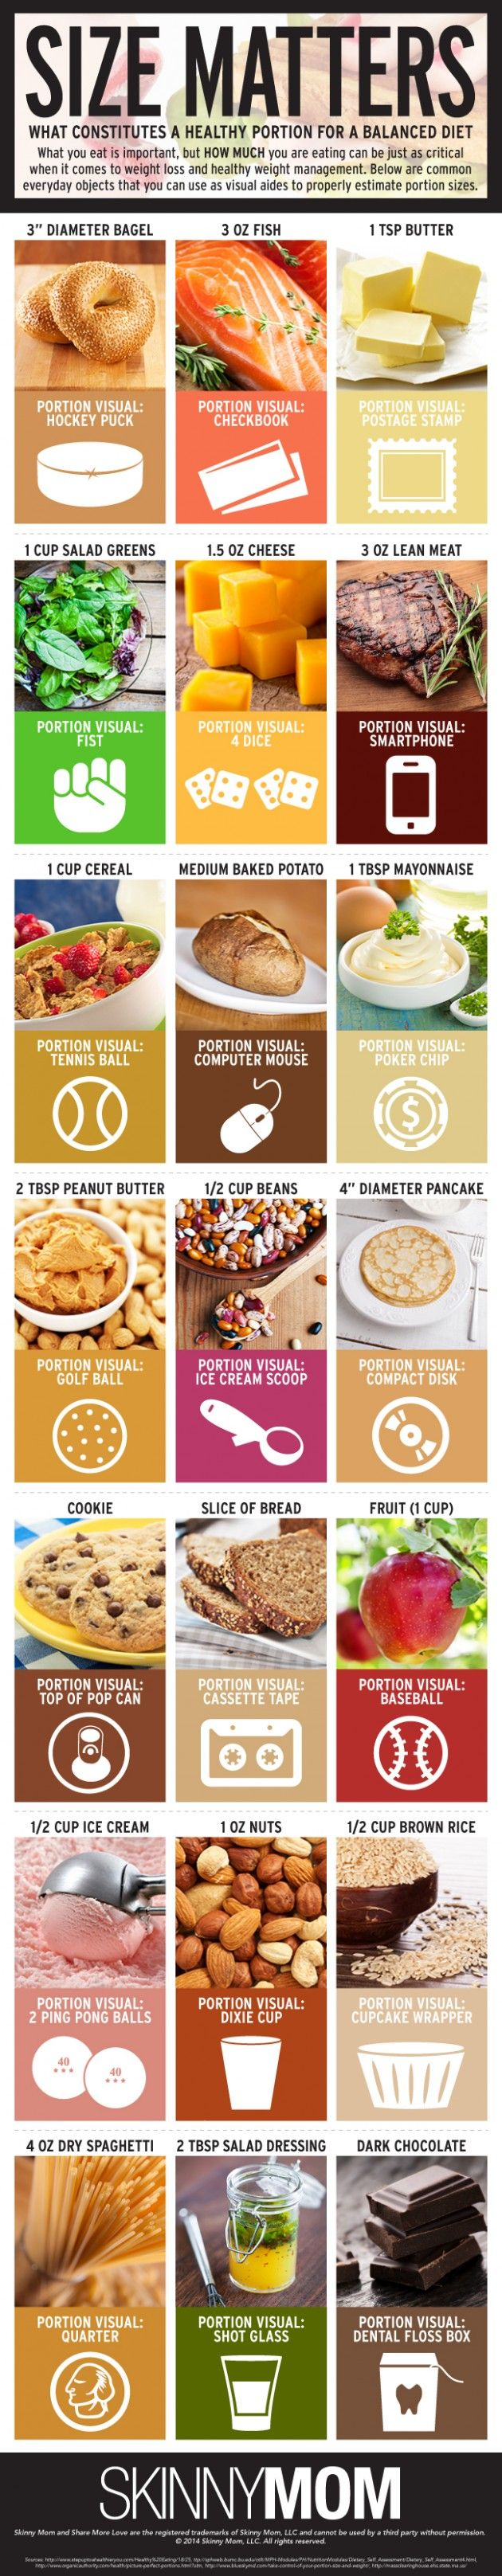 The ultimate visual guide to portion control | HellaWella